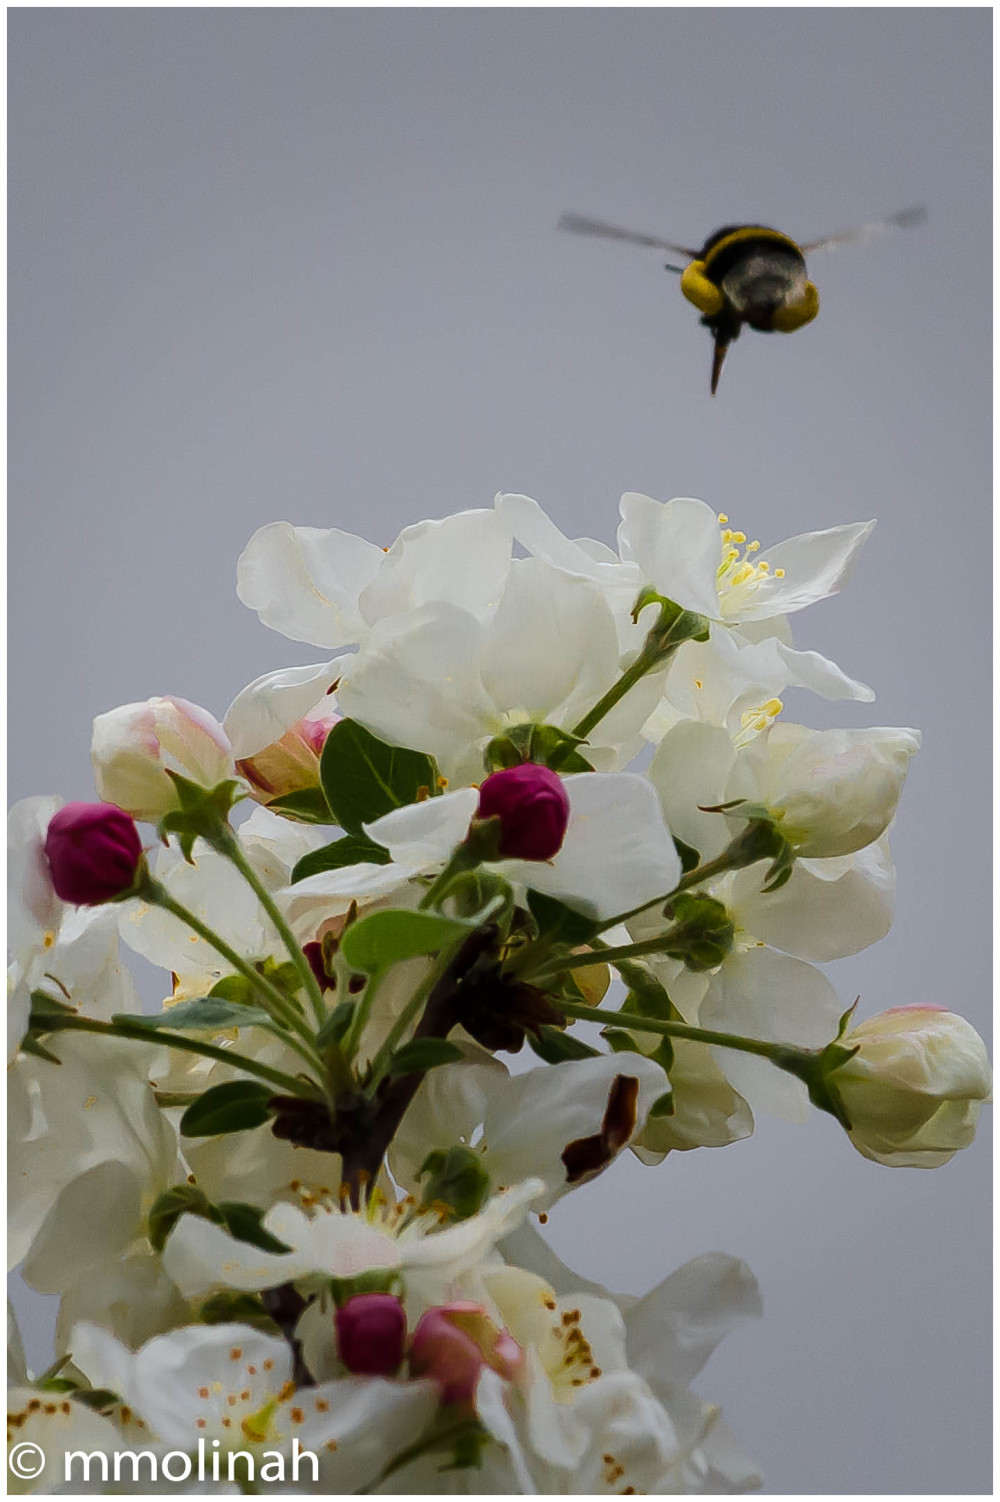 FLOWERS AND BEES FIVE